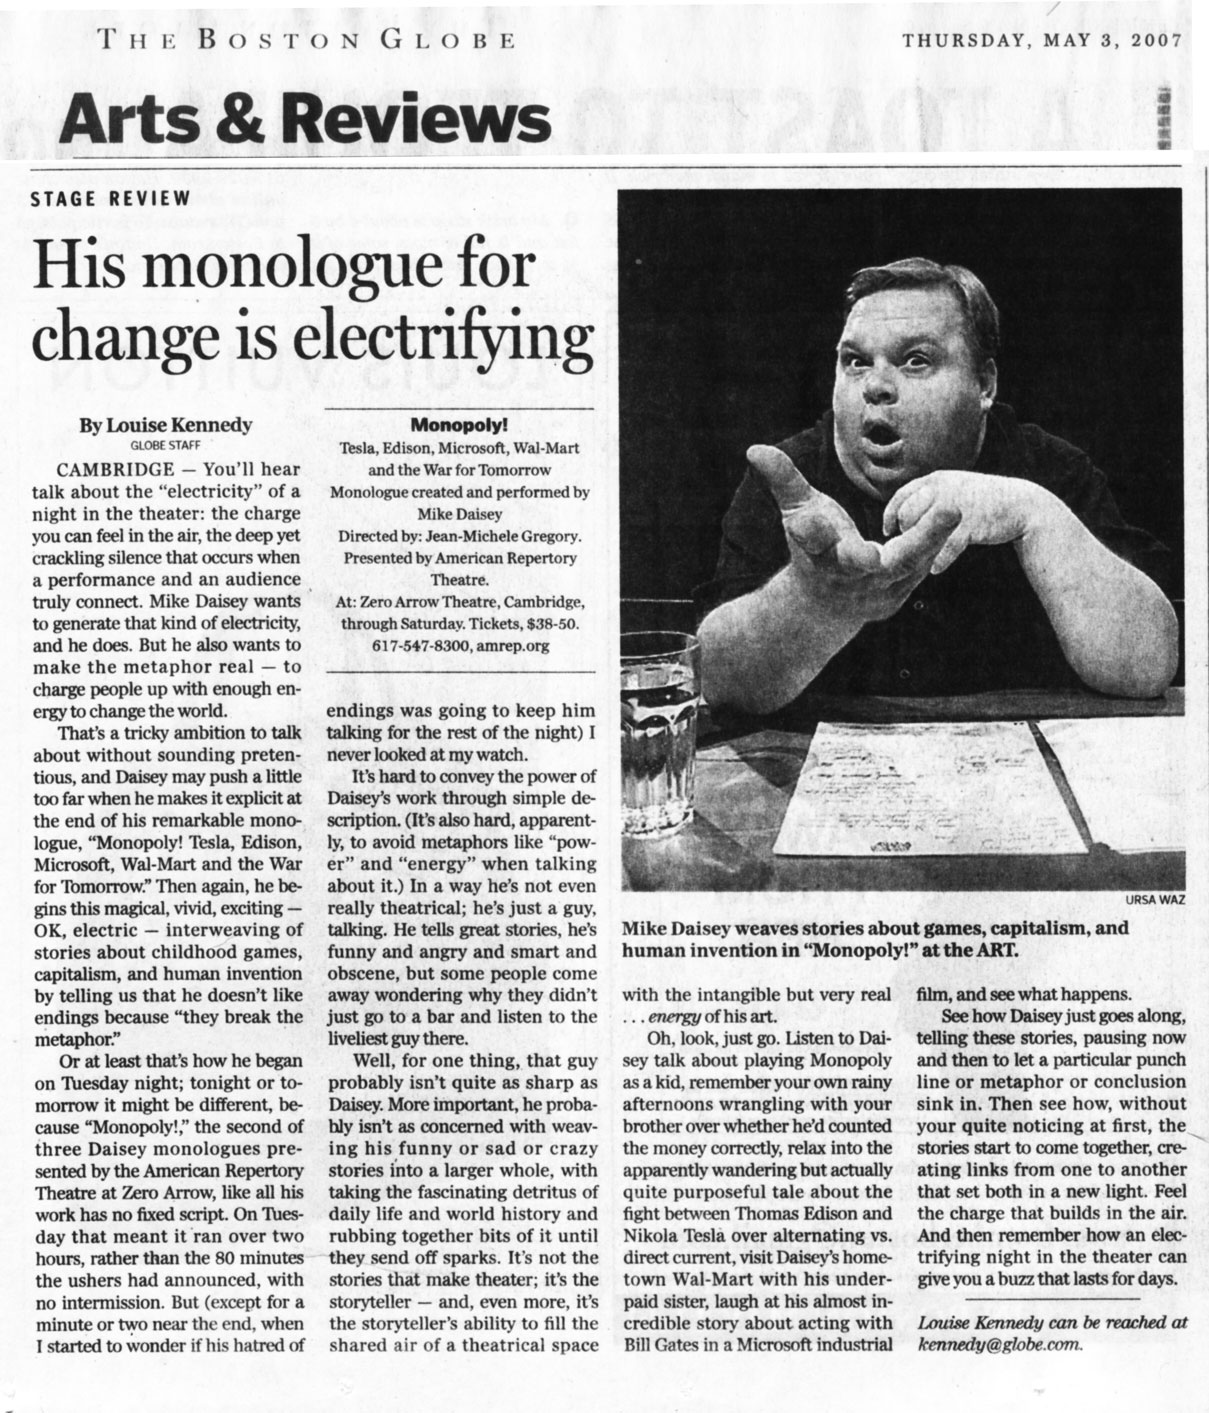 Mike Daisey: Monologues